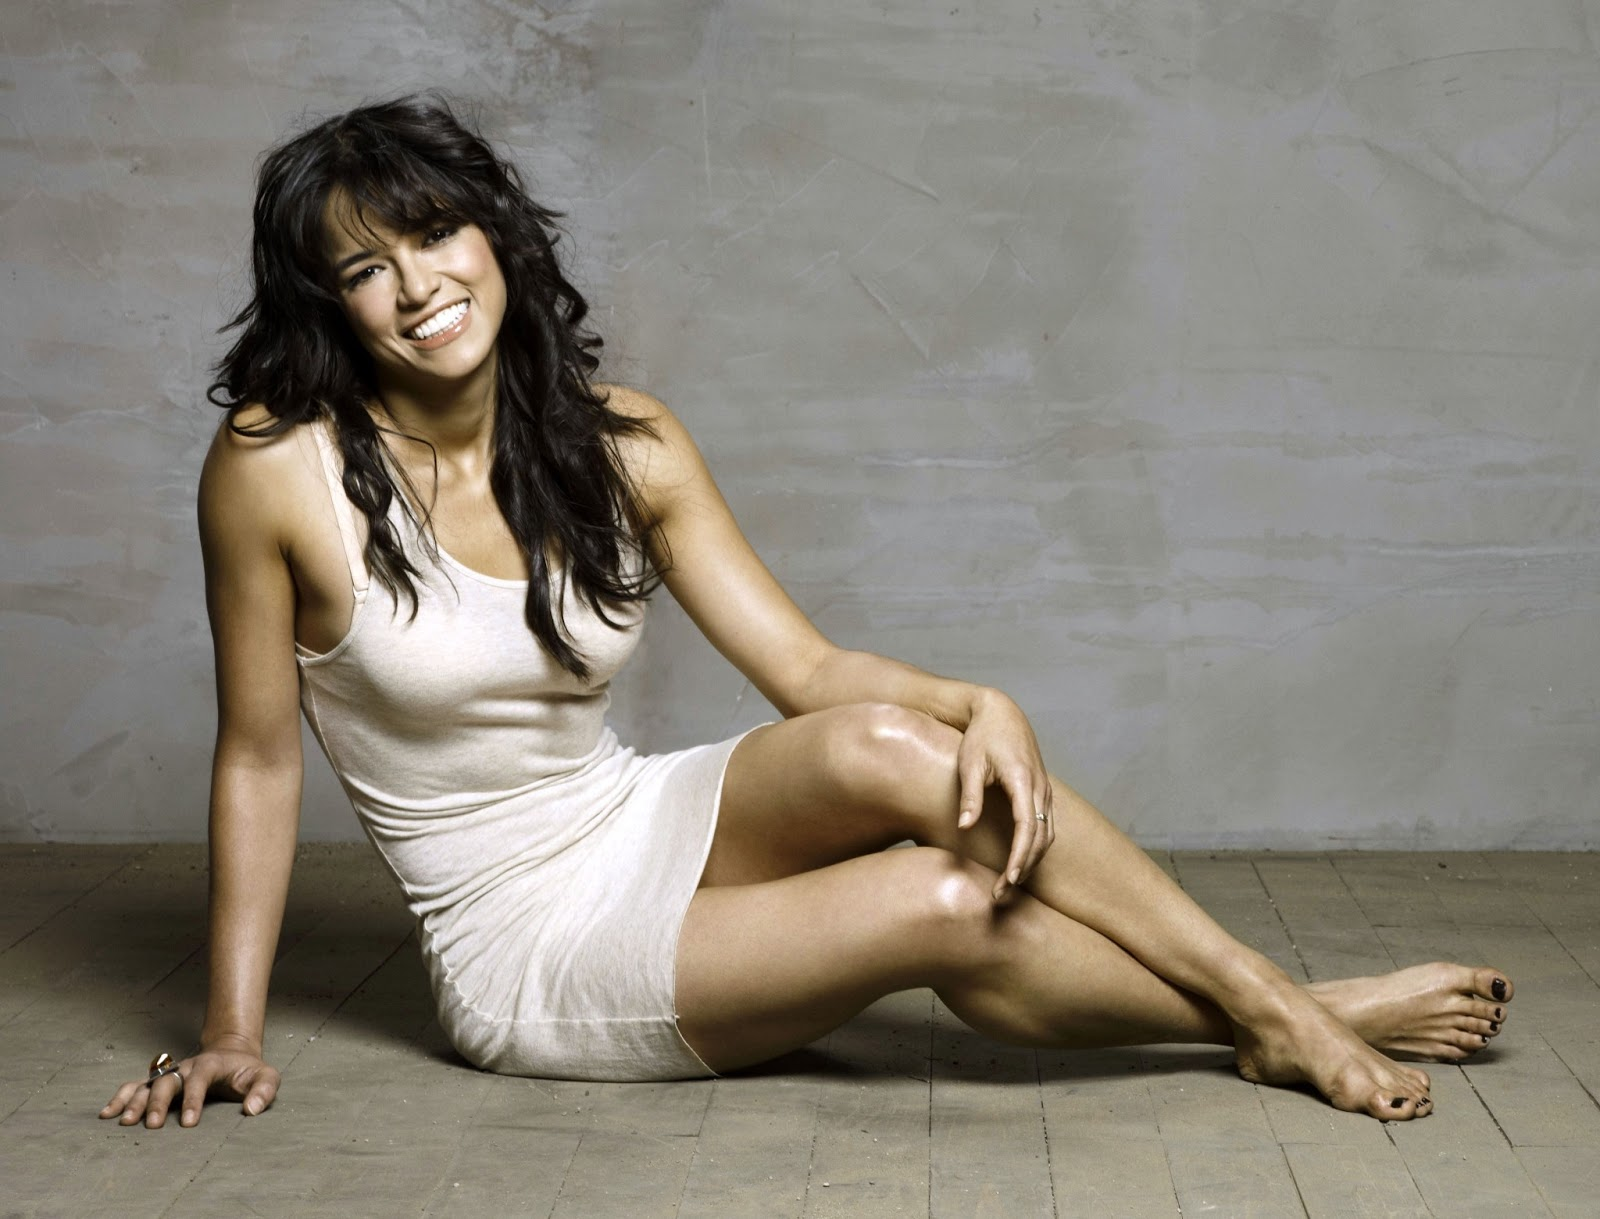 http://4.bp.blogspot.com/-7zdGUyyXmP0/USGi7nagRJI/AAAAAAAADfo/-i7EZqTB_Is/s1600/Michelle-Rodriguez-Hd-hot-wallpaper-67464.jpg